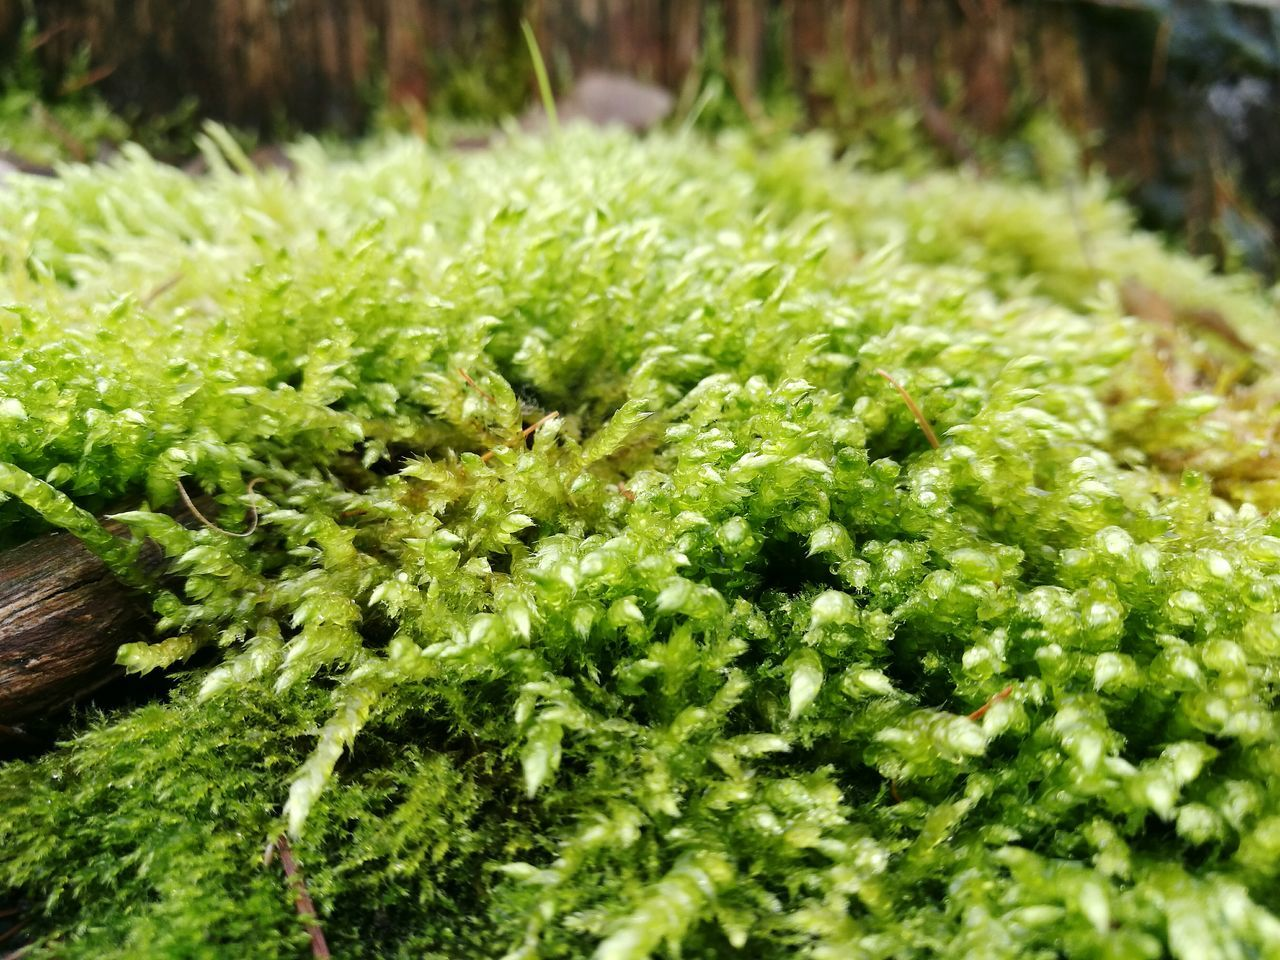 Green Color Nature Growth Outdoors Freshness Moss Forest Mosscovered Treetrunk